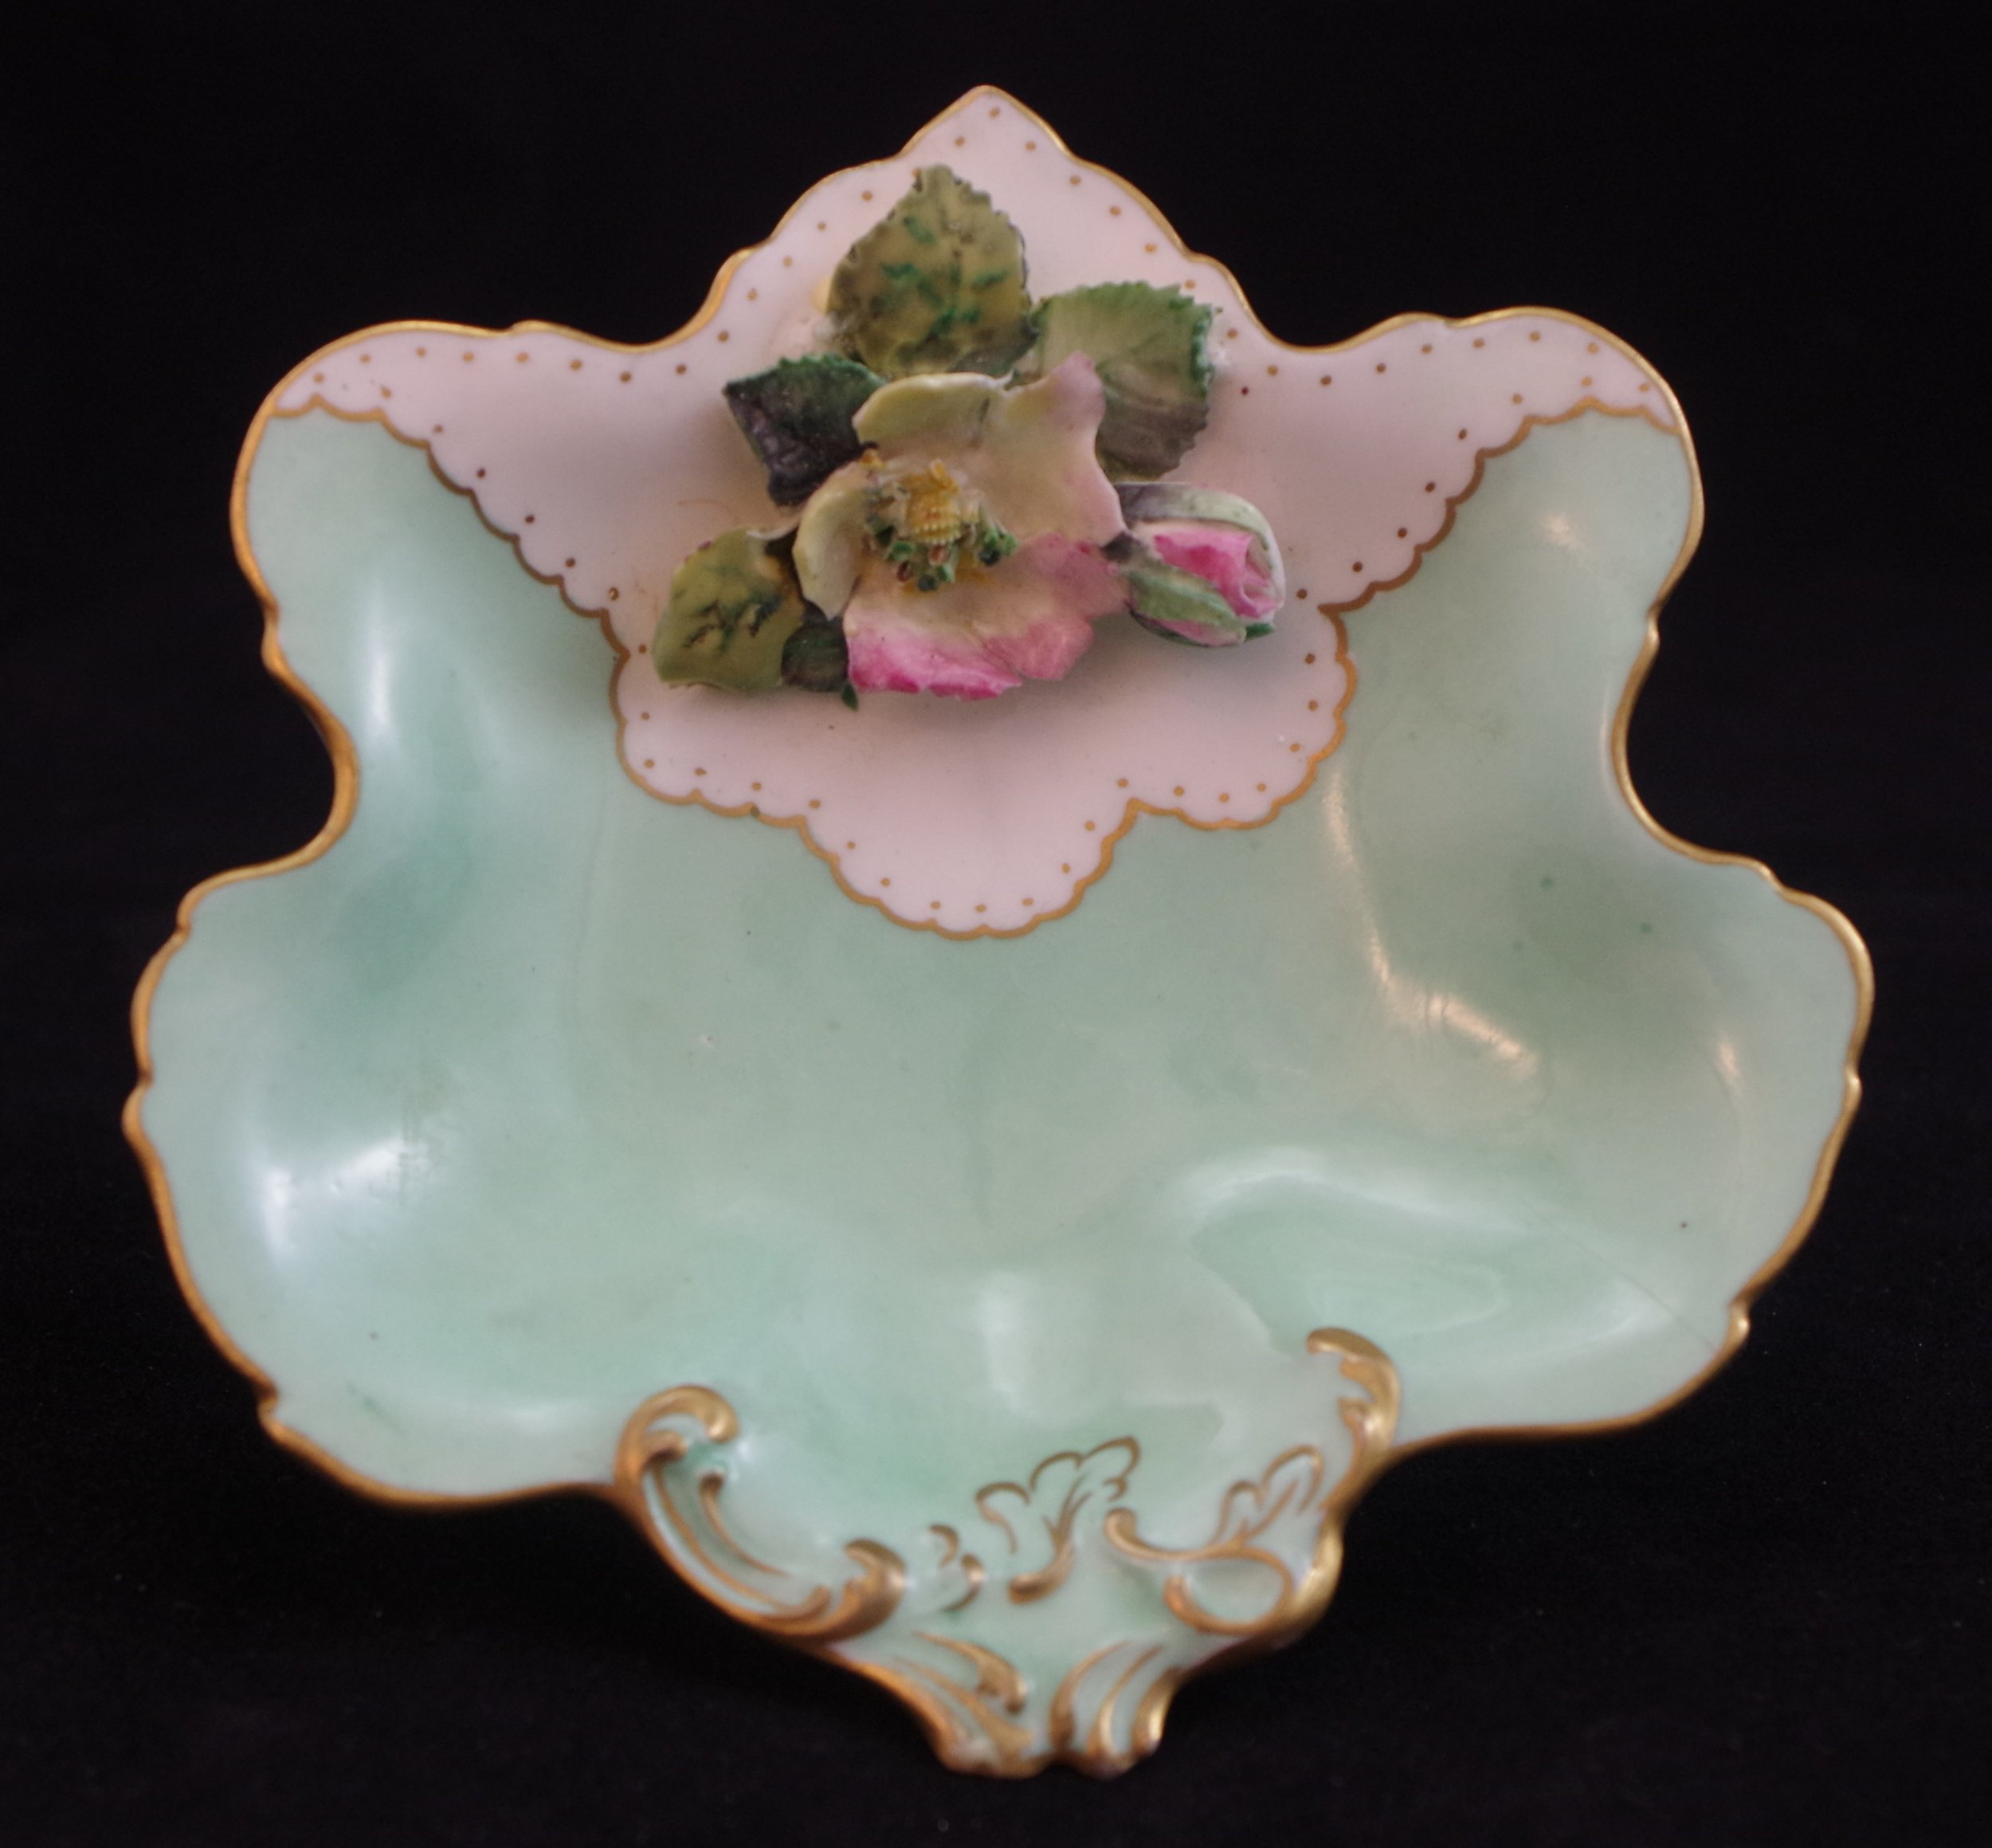 royal-crown-derby-1974-shape-flowered-rockingham-celadon